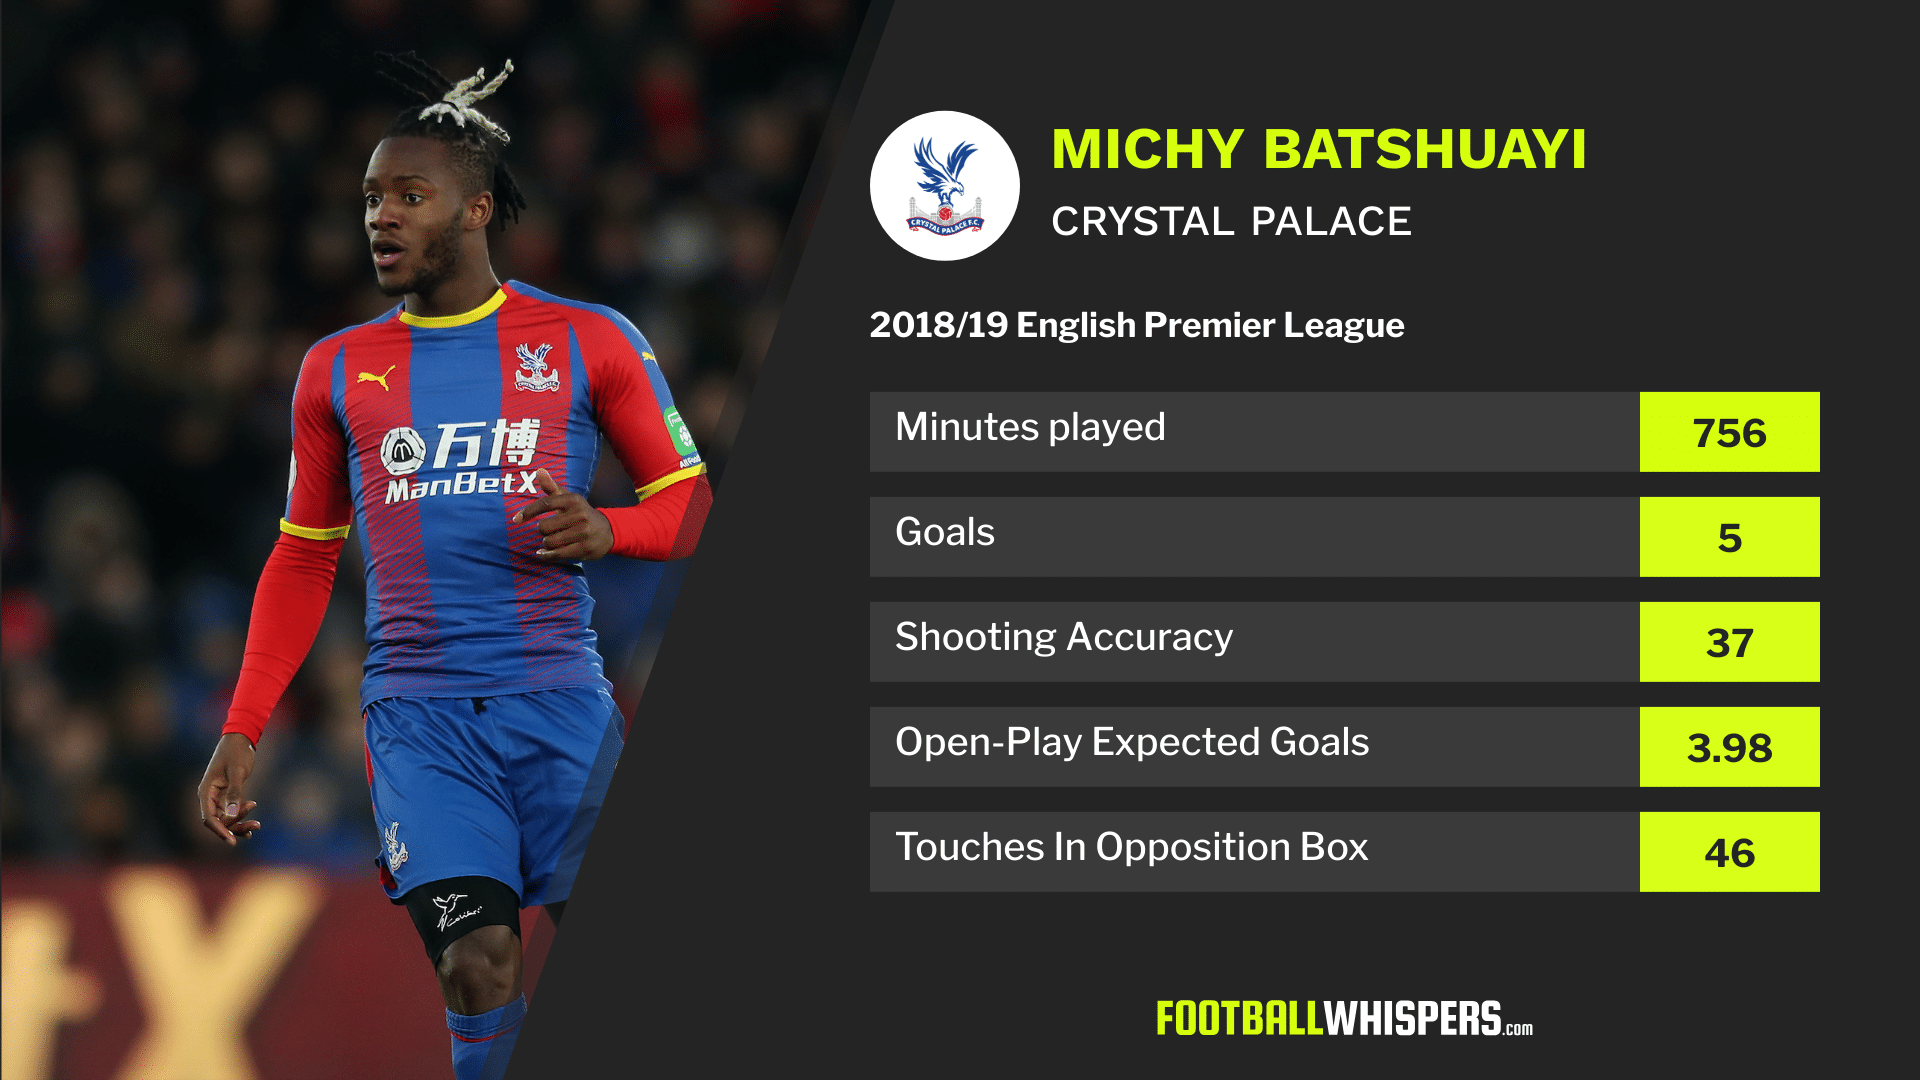 Premier League stats for Michy Batshuayi in 2018/19